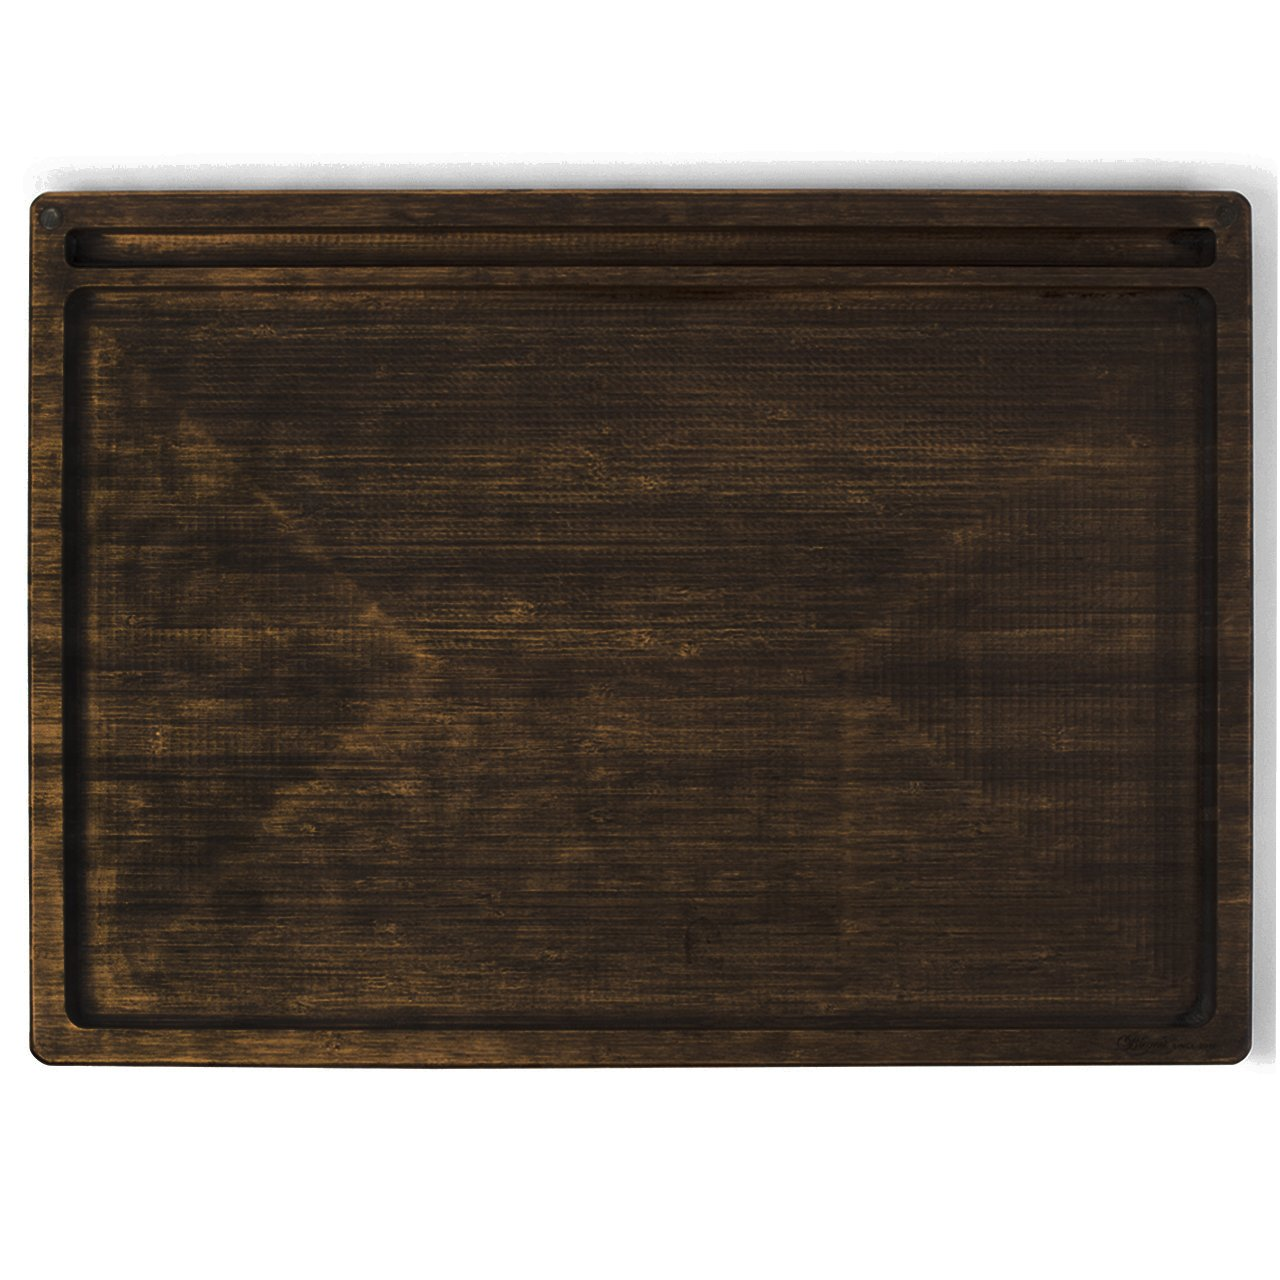 Beamer Goliath All-Natural Bamboo Rolling Tray - Dark Finish - 21 X 15 inch by Beamer